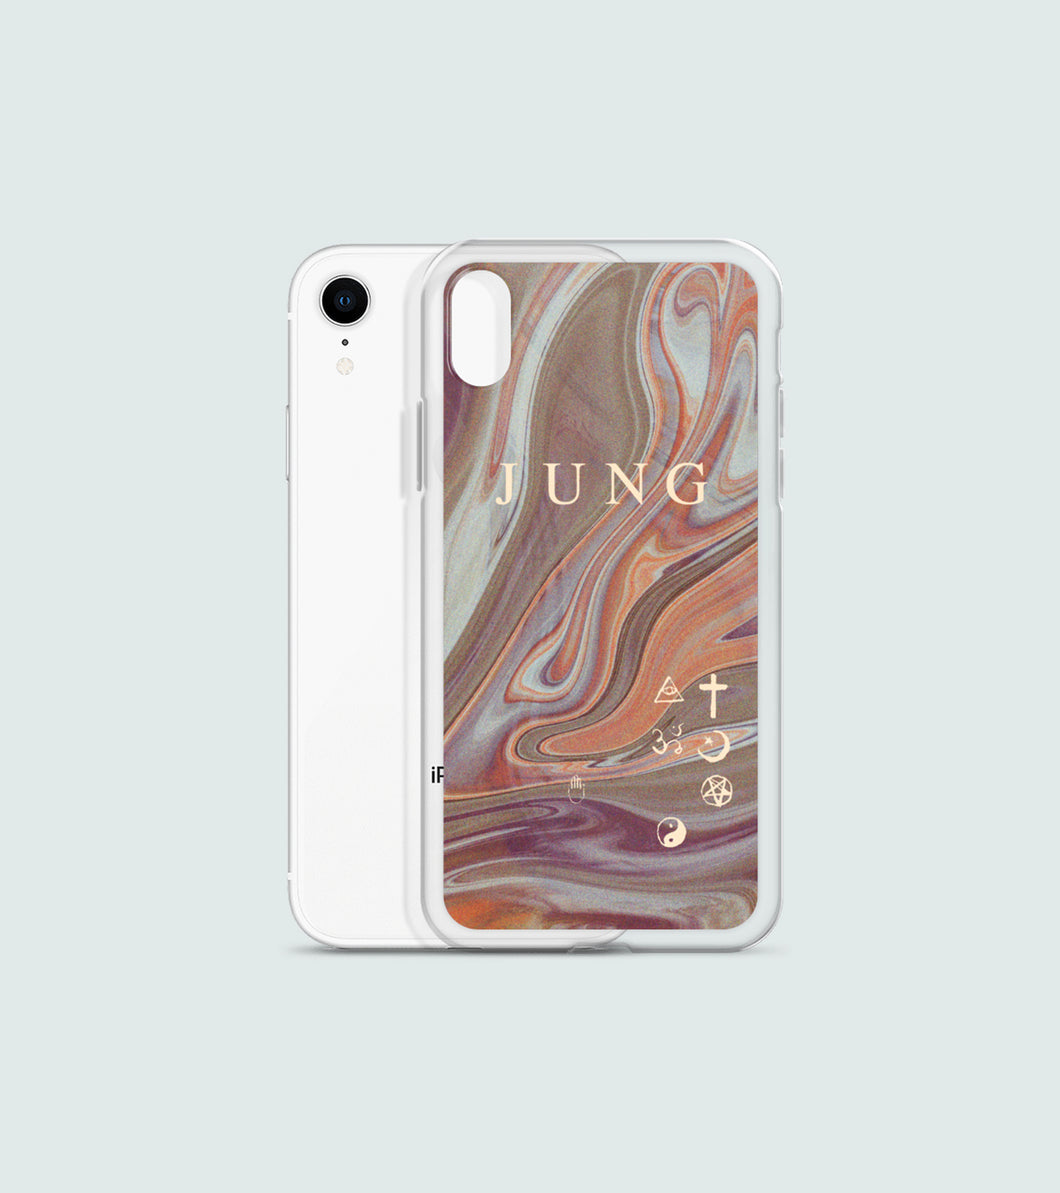 JUNG iPhone Case